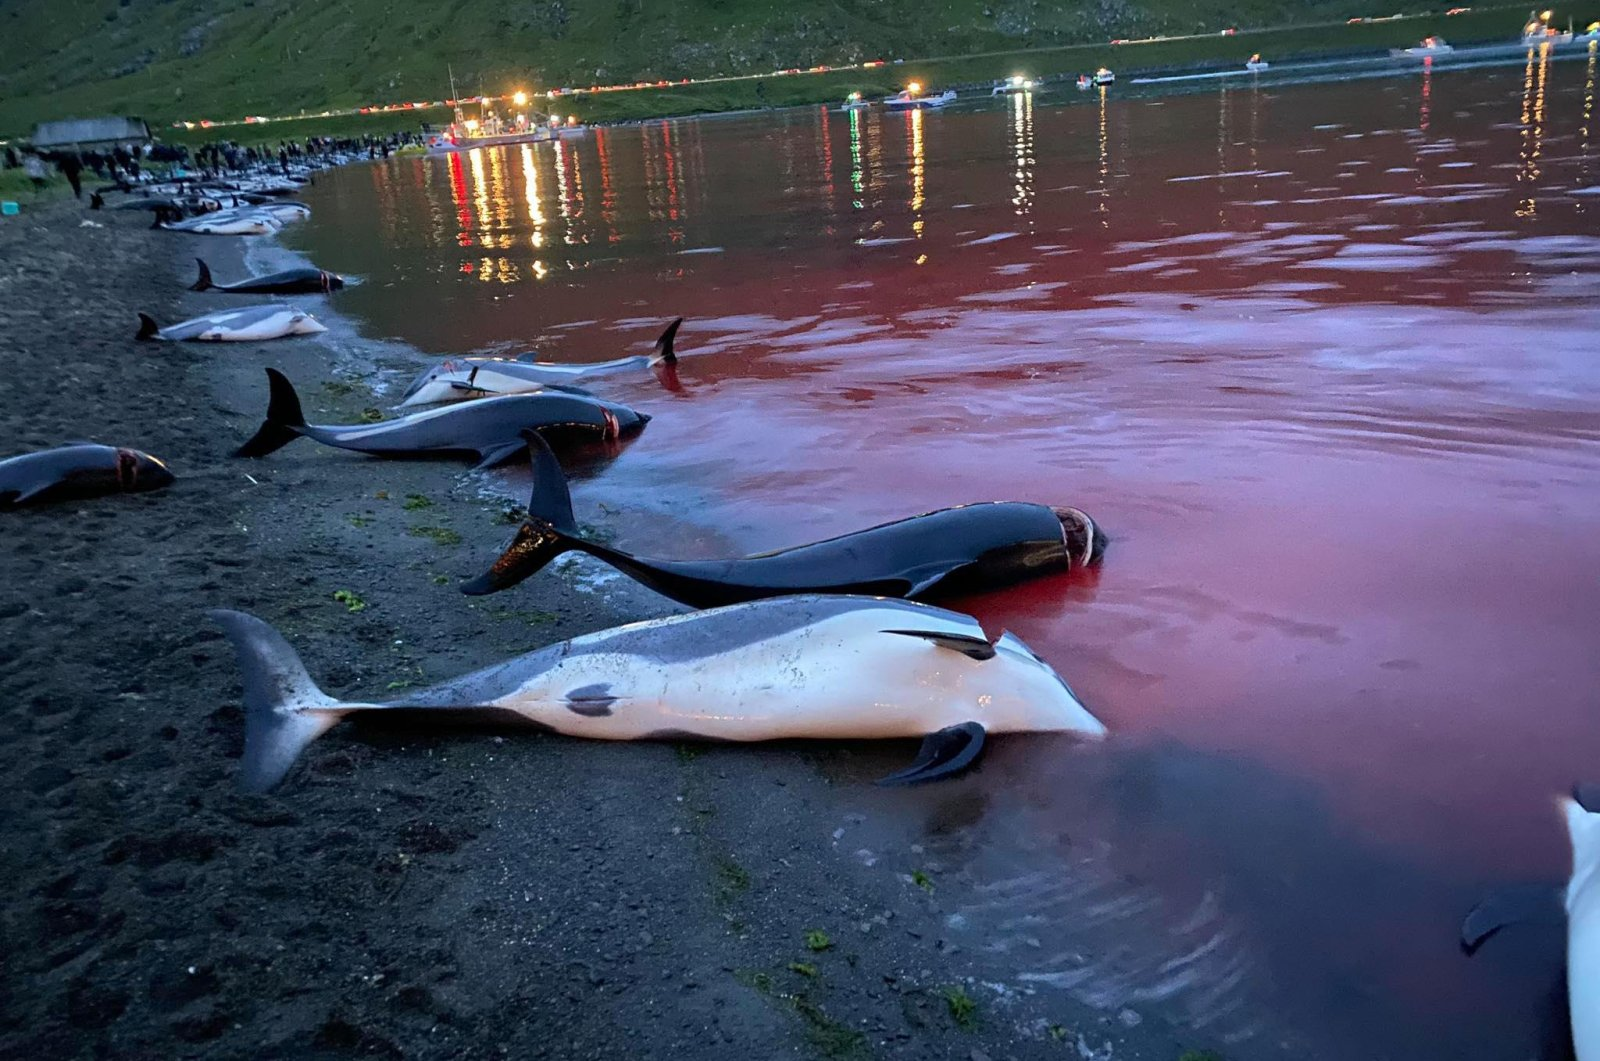 In this image released by Sea Shepherd Conservation Society, the carcasses of dead white-sided dolphins lay on a beach after being pulled from the blood-stained water on the island of Eysturoy, which is part of the Faeroe Islands, Sept. 12, 2021. (Sea Shepherd via AP)